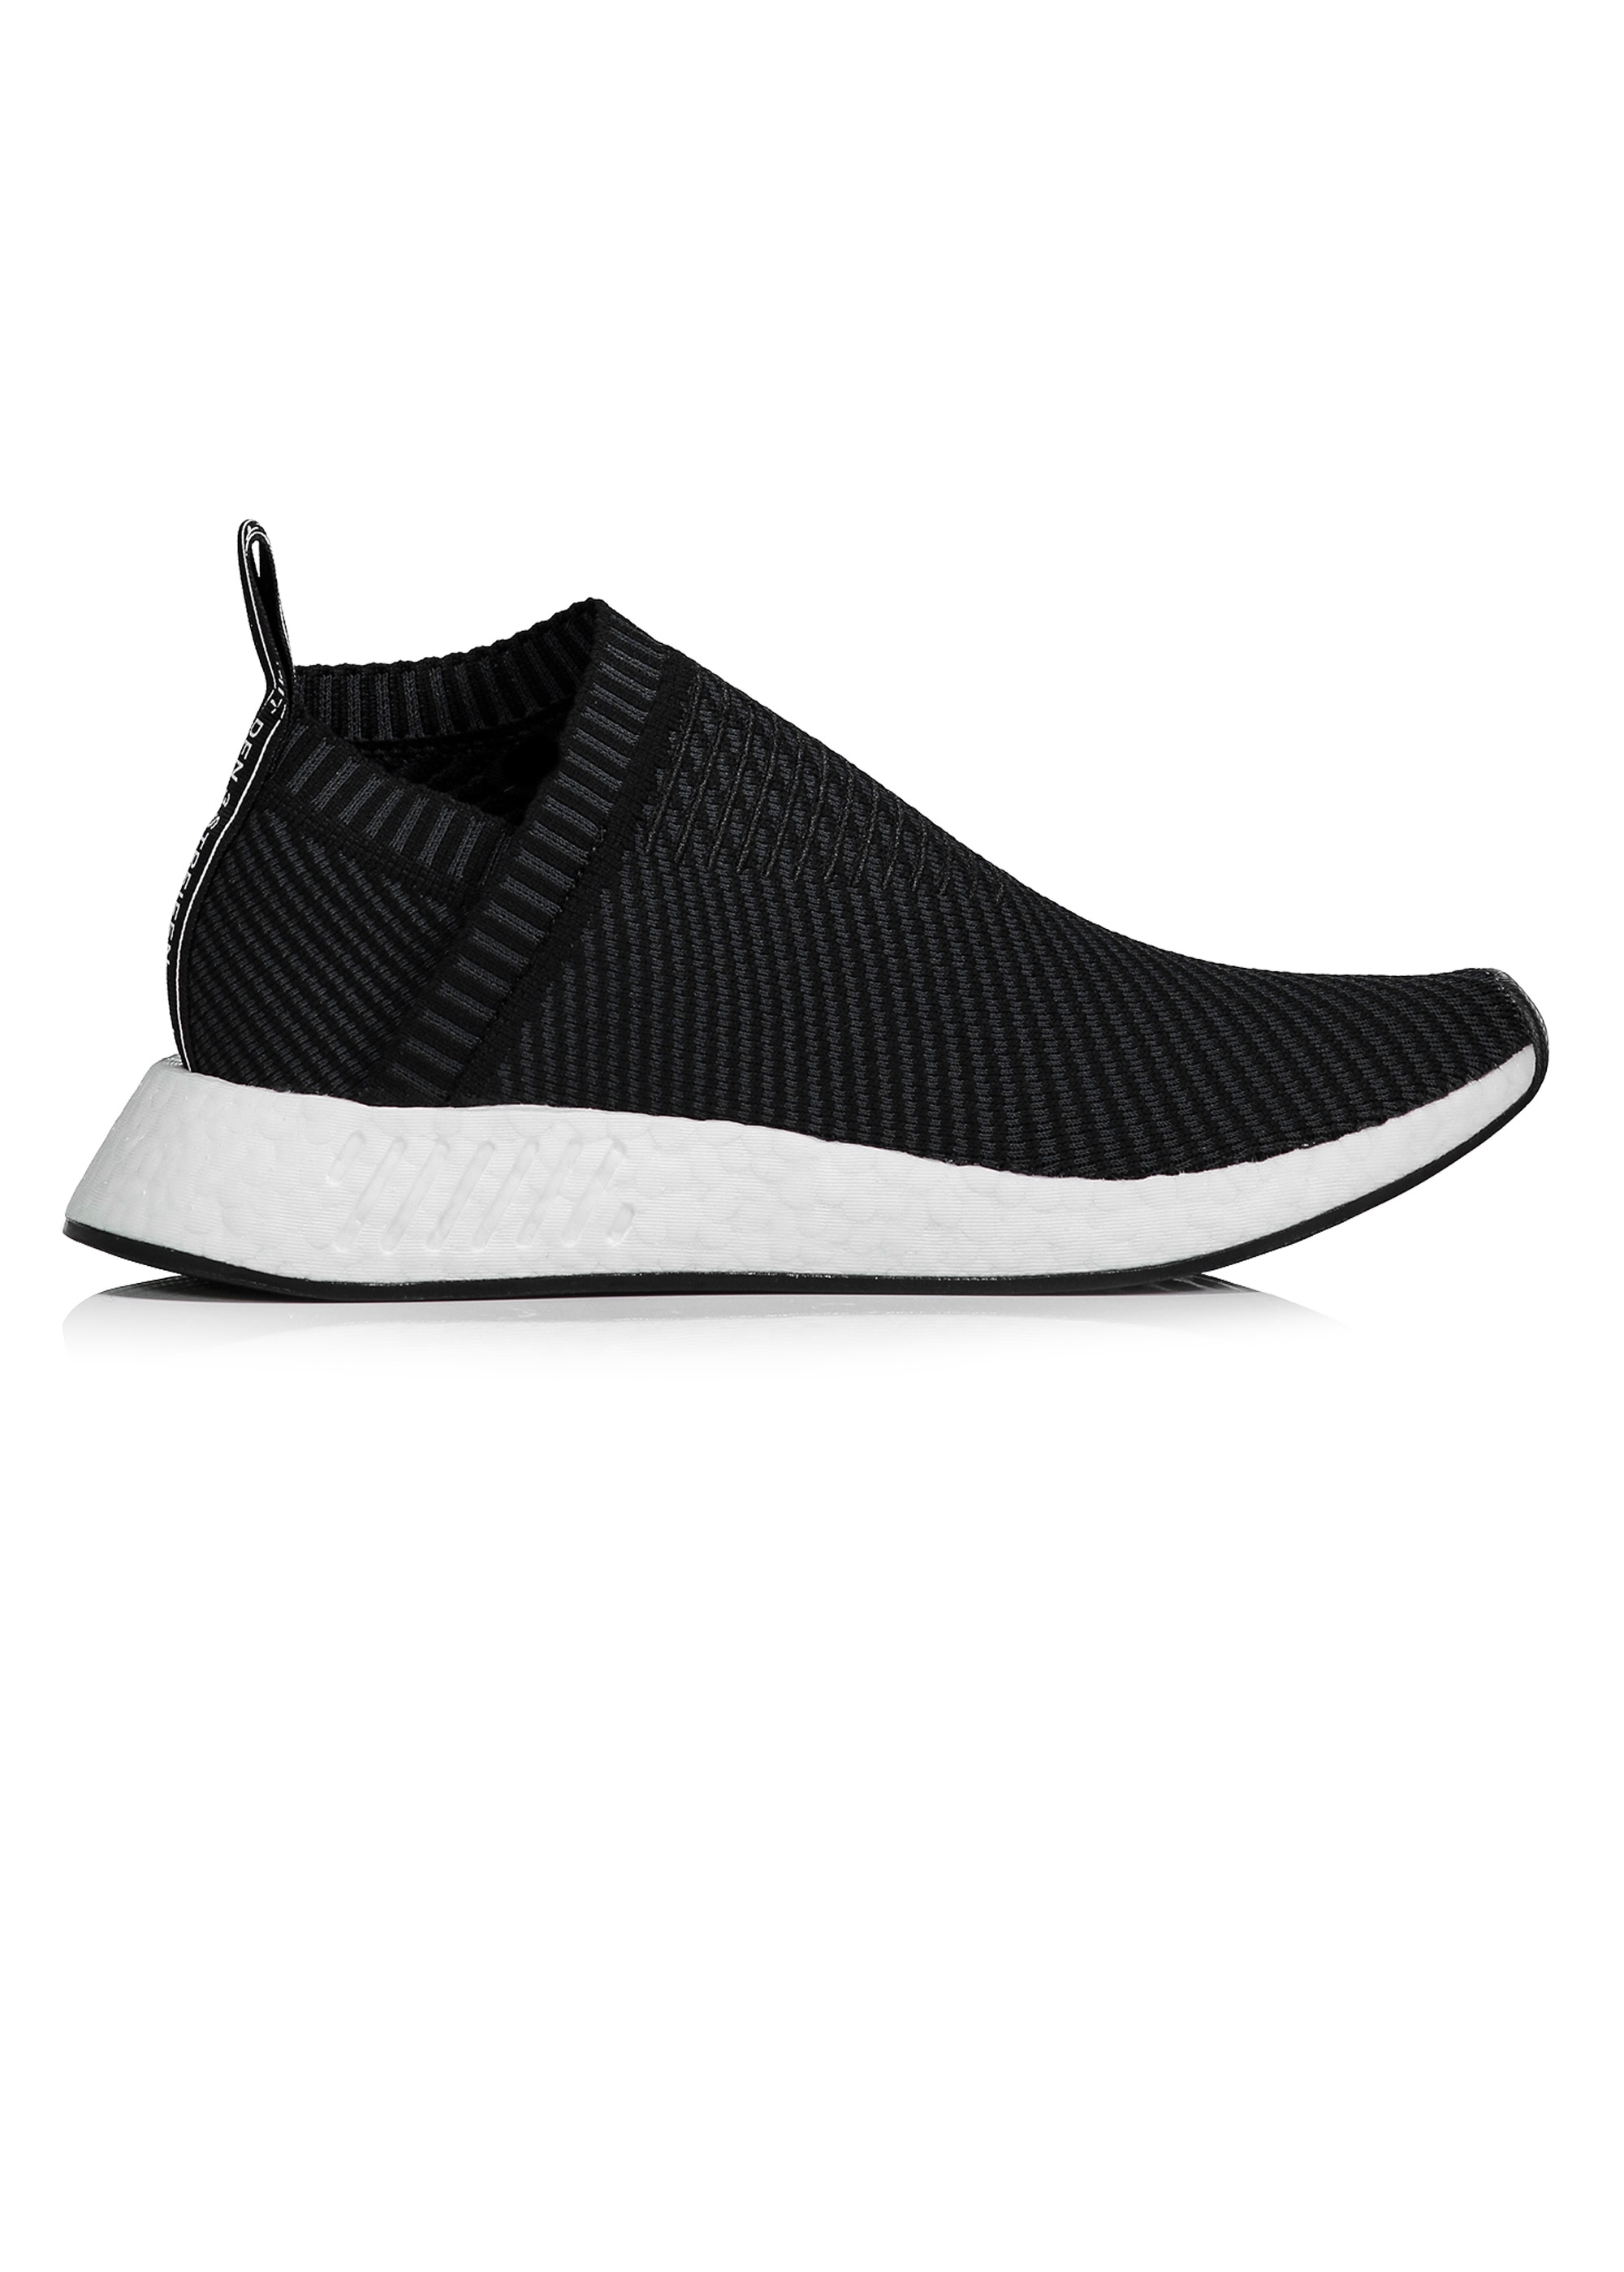 Adidas Originals Footwear Footwear Footwear NMD CS2 PK schwarz Trainers from Triads UK c7cd31